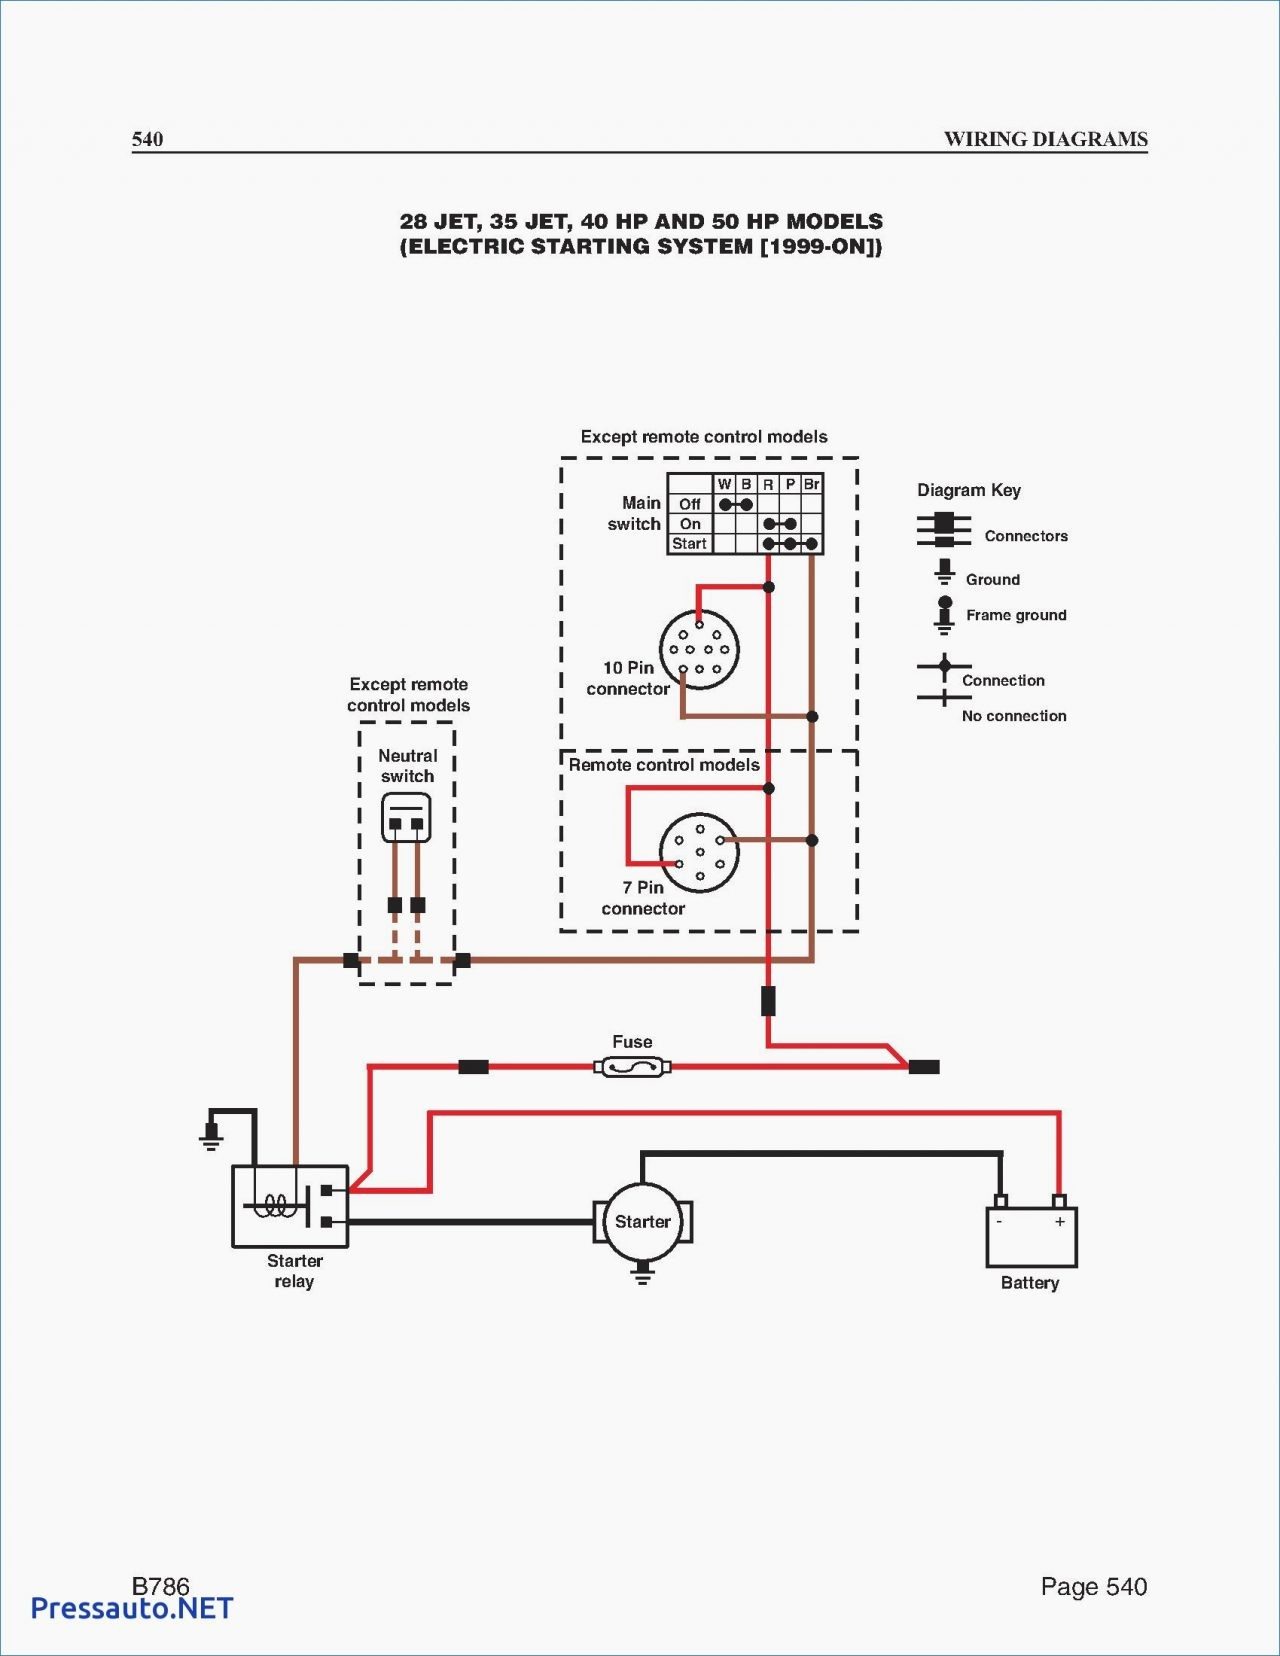 Copper Single Pole Dimmer Switch Wiring Diagram 1 Schemes Double - Single Pole Dimmer Switch Wiring Diagram